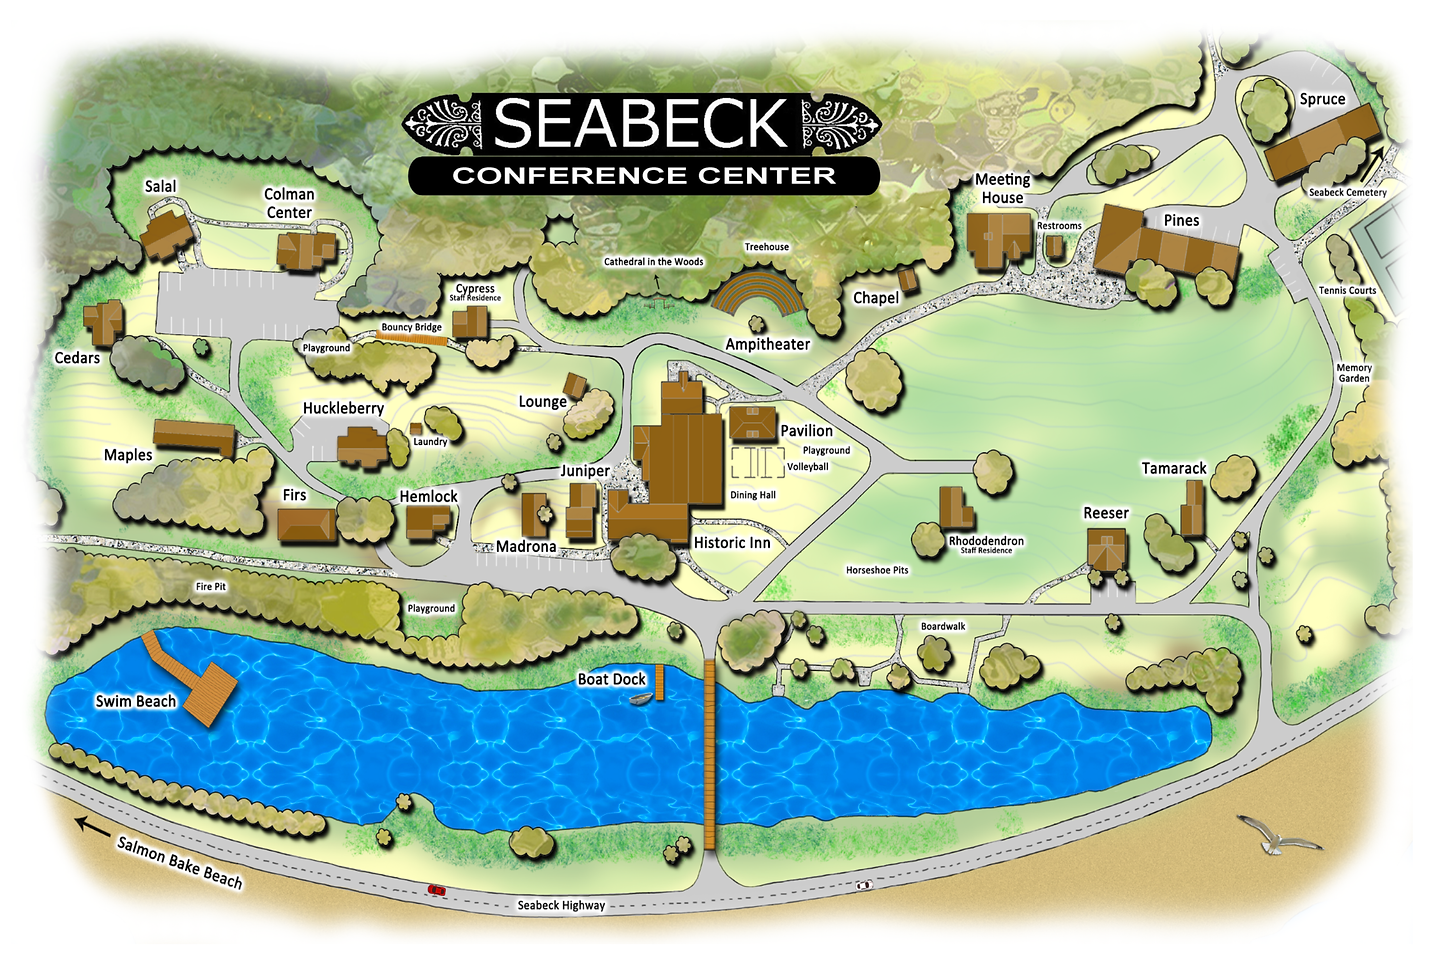 Seabeck Conference Center Map